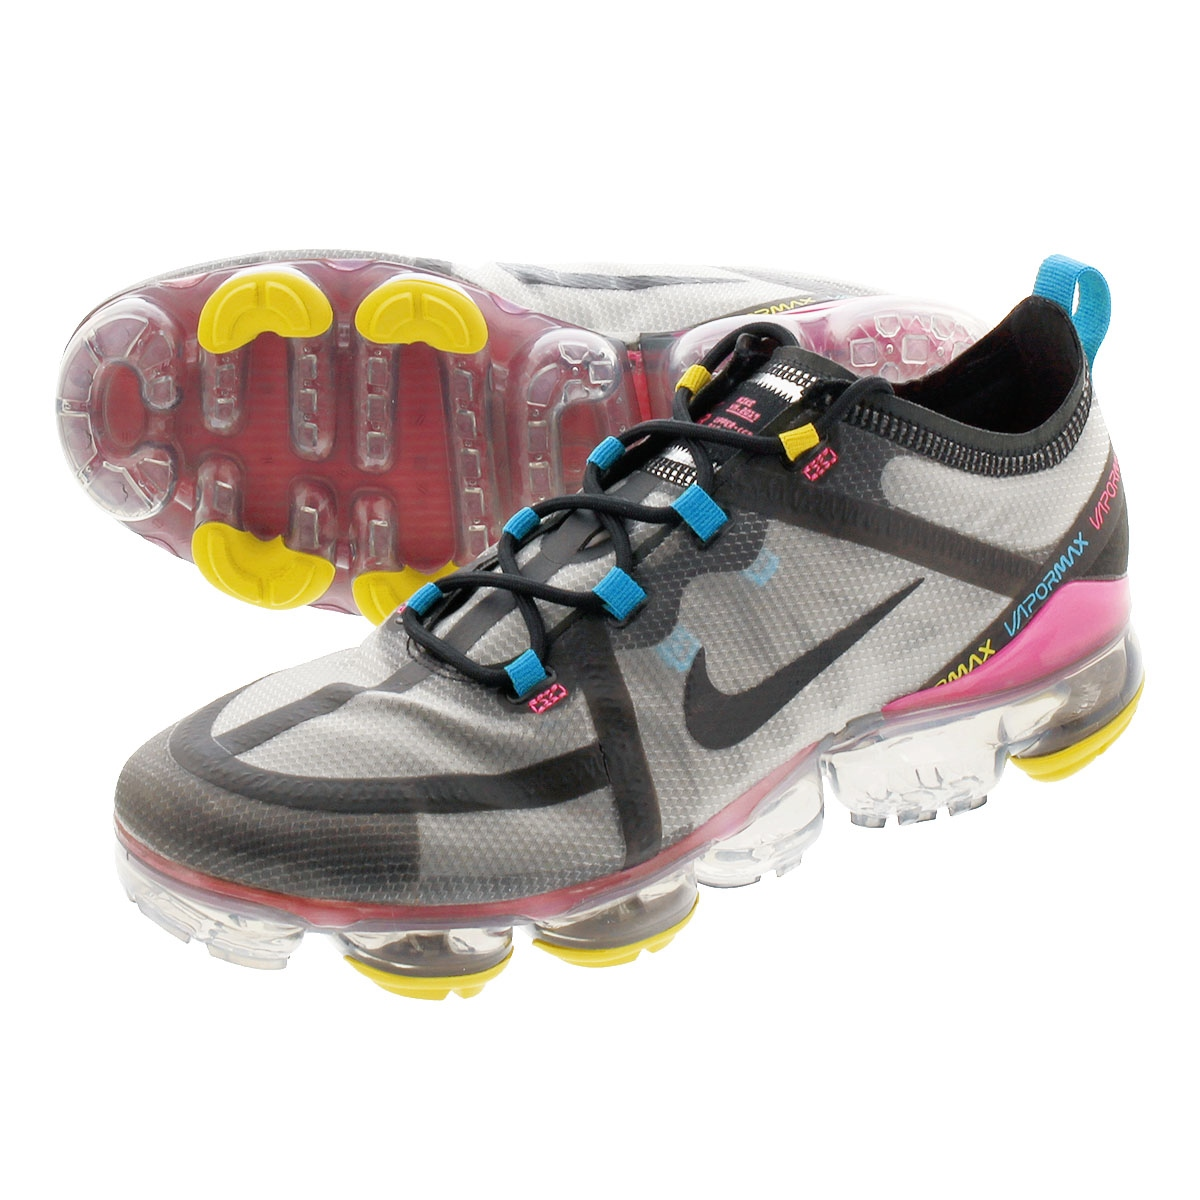 innovative design ded01 870e4 NIKE AIR VAPORMAX 2019 Nike air vapor max 2019 MOON PARTICLE/BLACK/PINK  BLAST ci9891-200